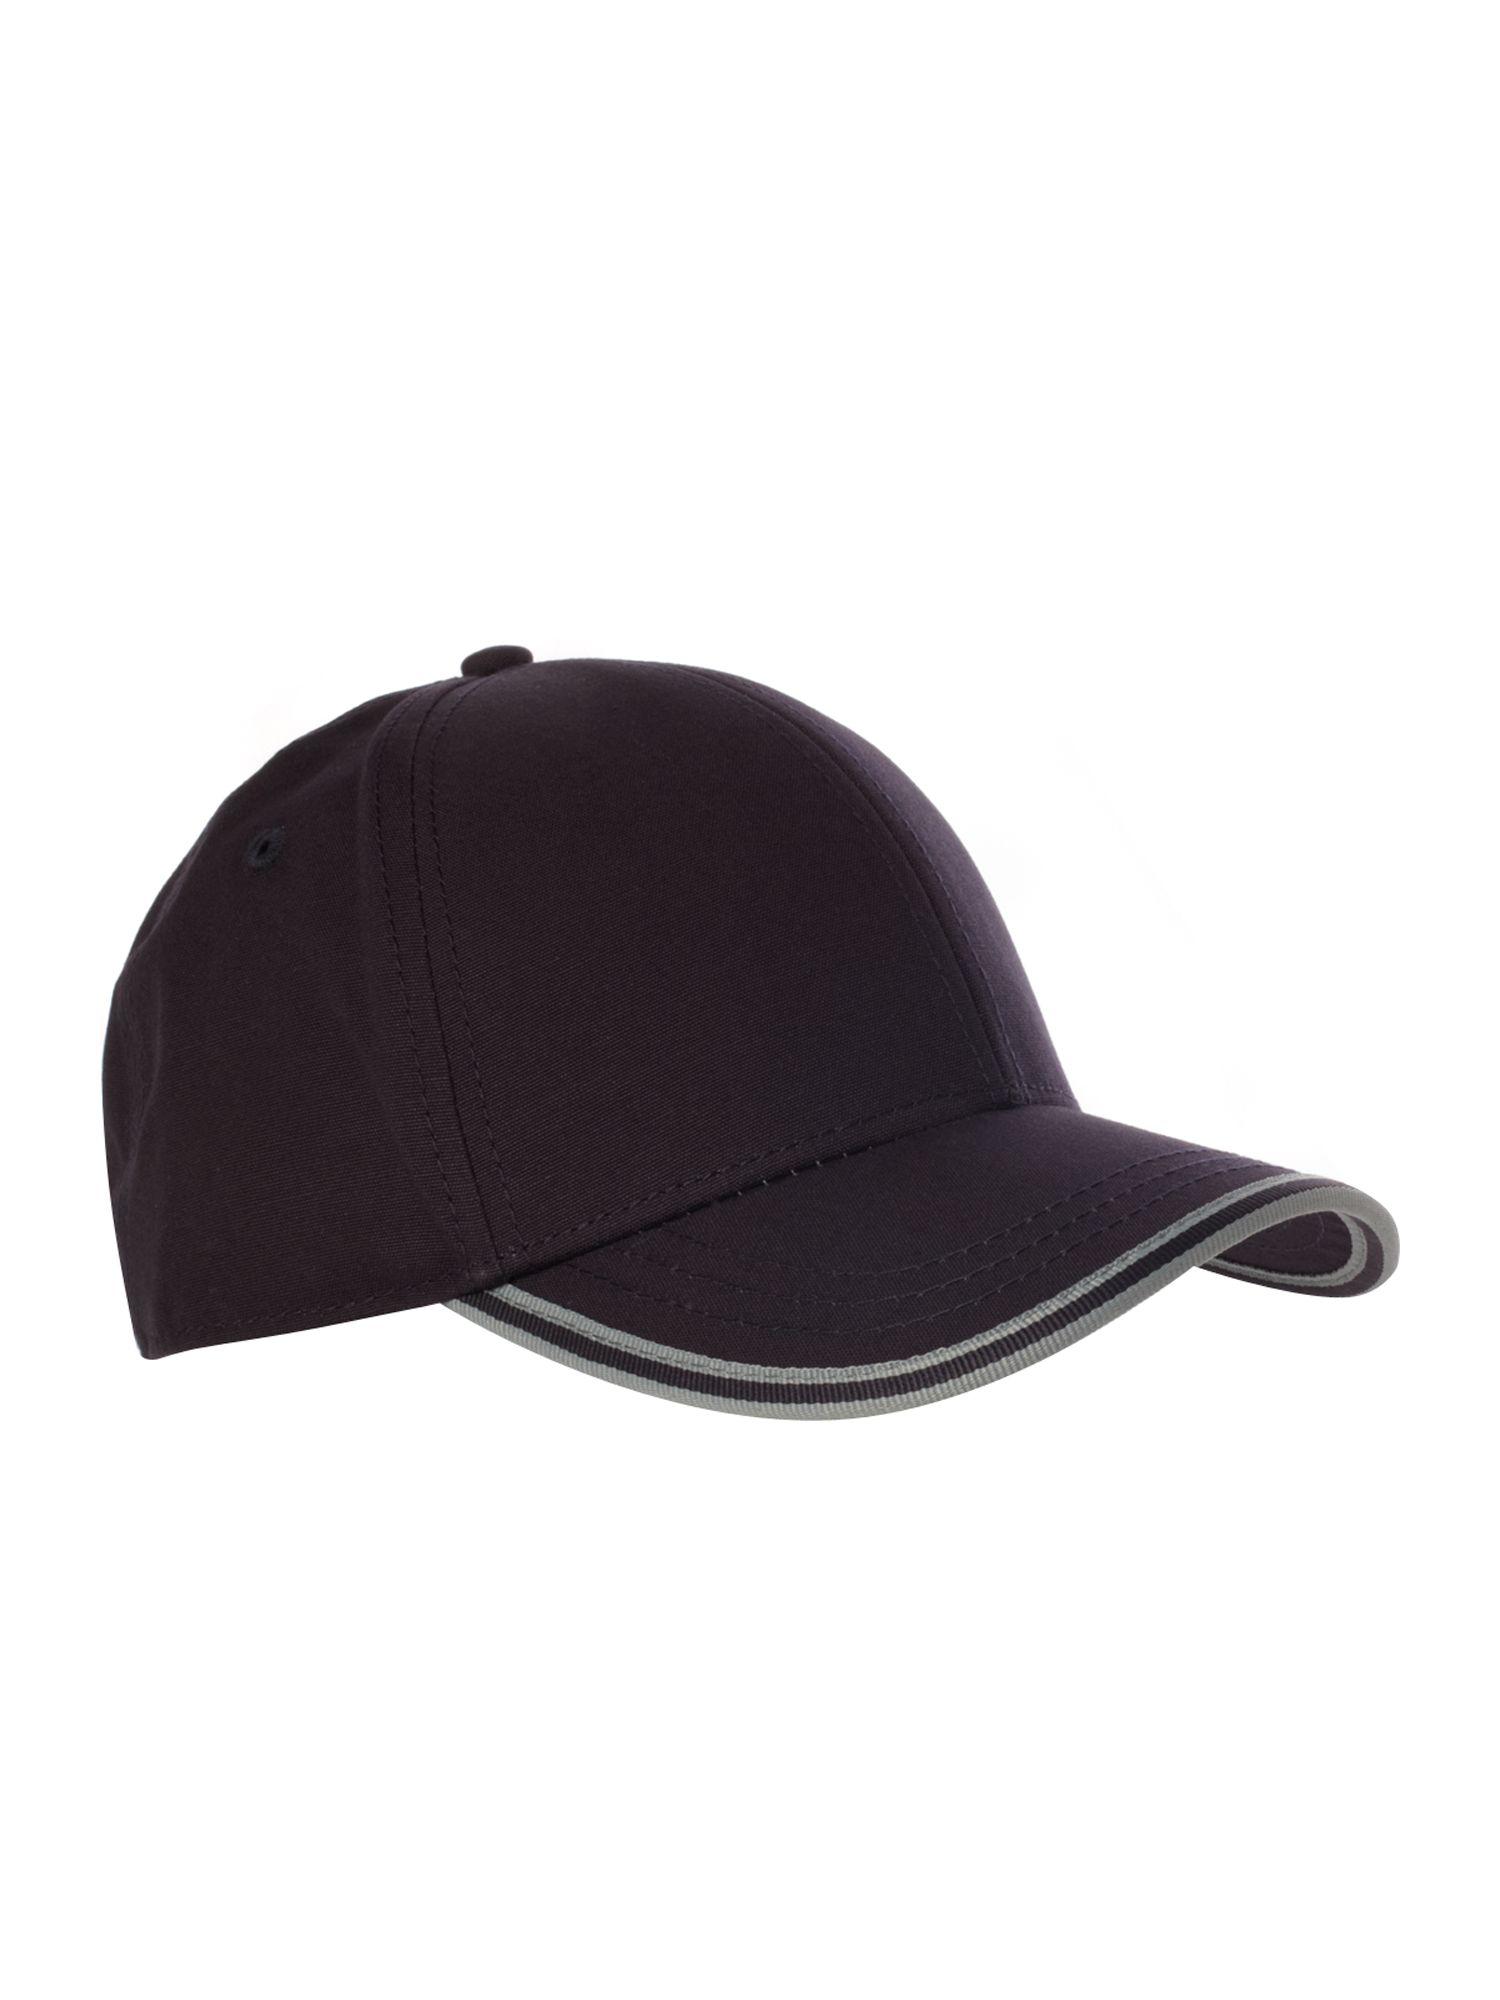 fred perry baseball caps. Black Bedroom Furniture Sets. Home Design Ideas